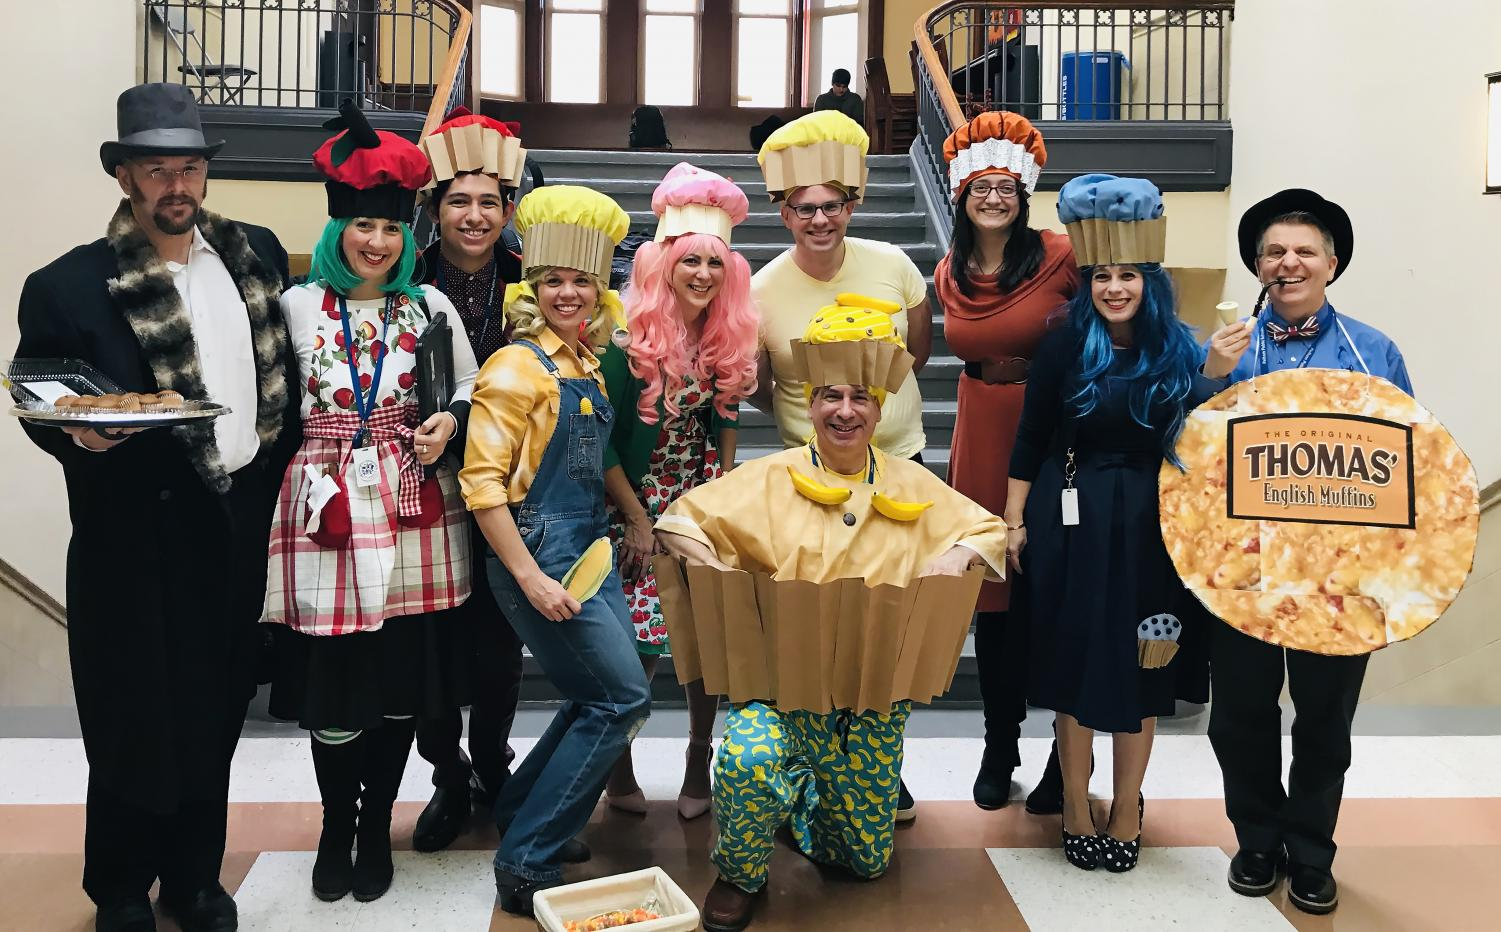 The English department in their winning guise as The English Muffins: (l to r) Mr. Powers as the Muffin Man, Ms. Wasnetsky as Apple Cinnamon, intern Eric Toruella as Red Velvet, Mrs. Kiessling as Corn, Ms. Carmody as Strawberry, Mr. Schleifer as Banana Nut, Mr. Sans as Lemon Poppy,  Ms. Strachan as Pumpkin, Mrs. O'Brien as Blueberry and Mr. Beck as an actual English Muffin.